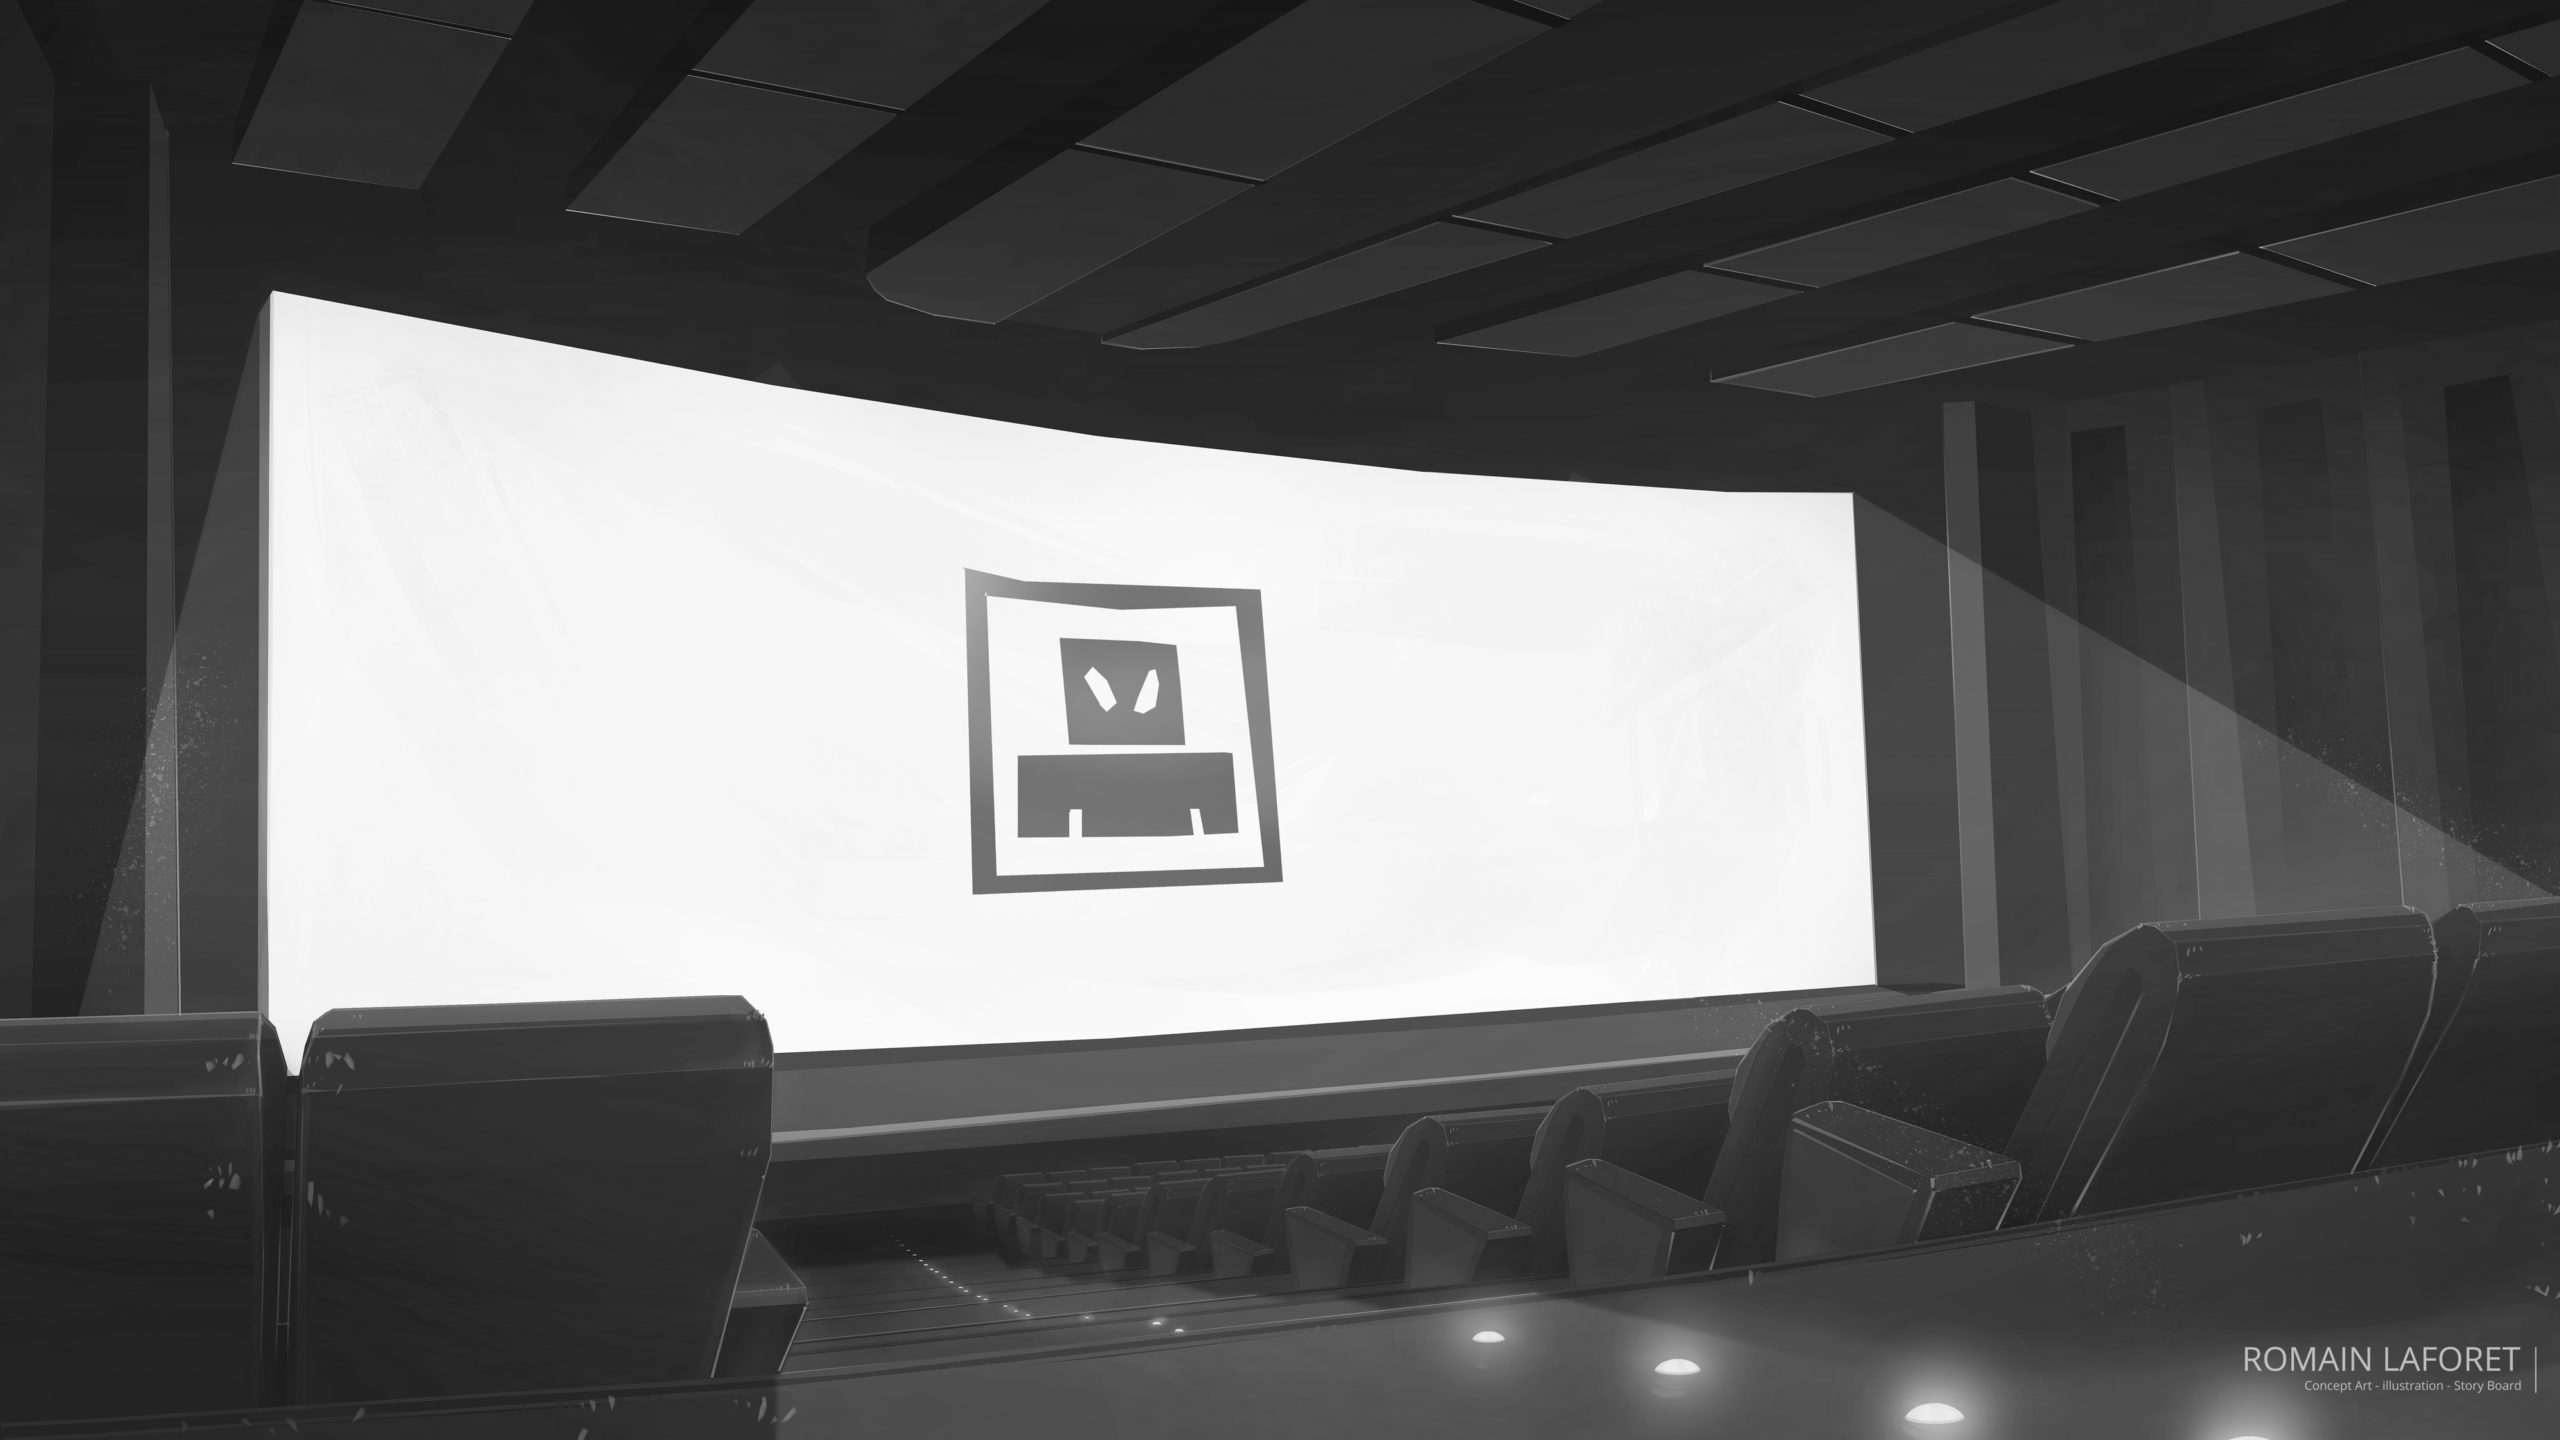 Movie theater concept background noir et blanc romain laforet